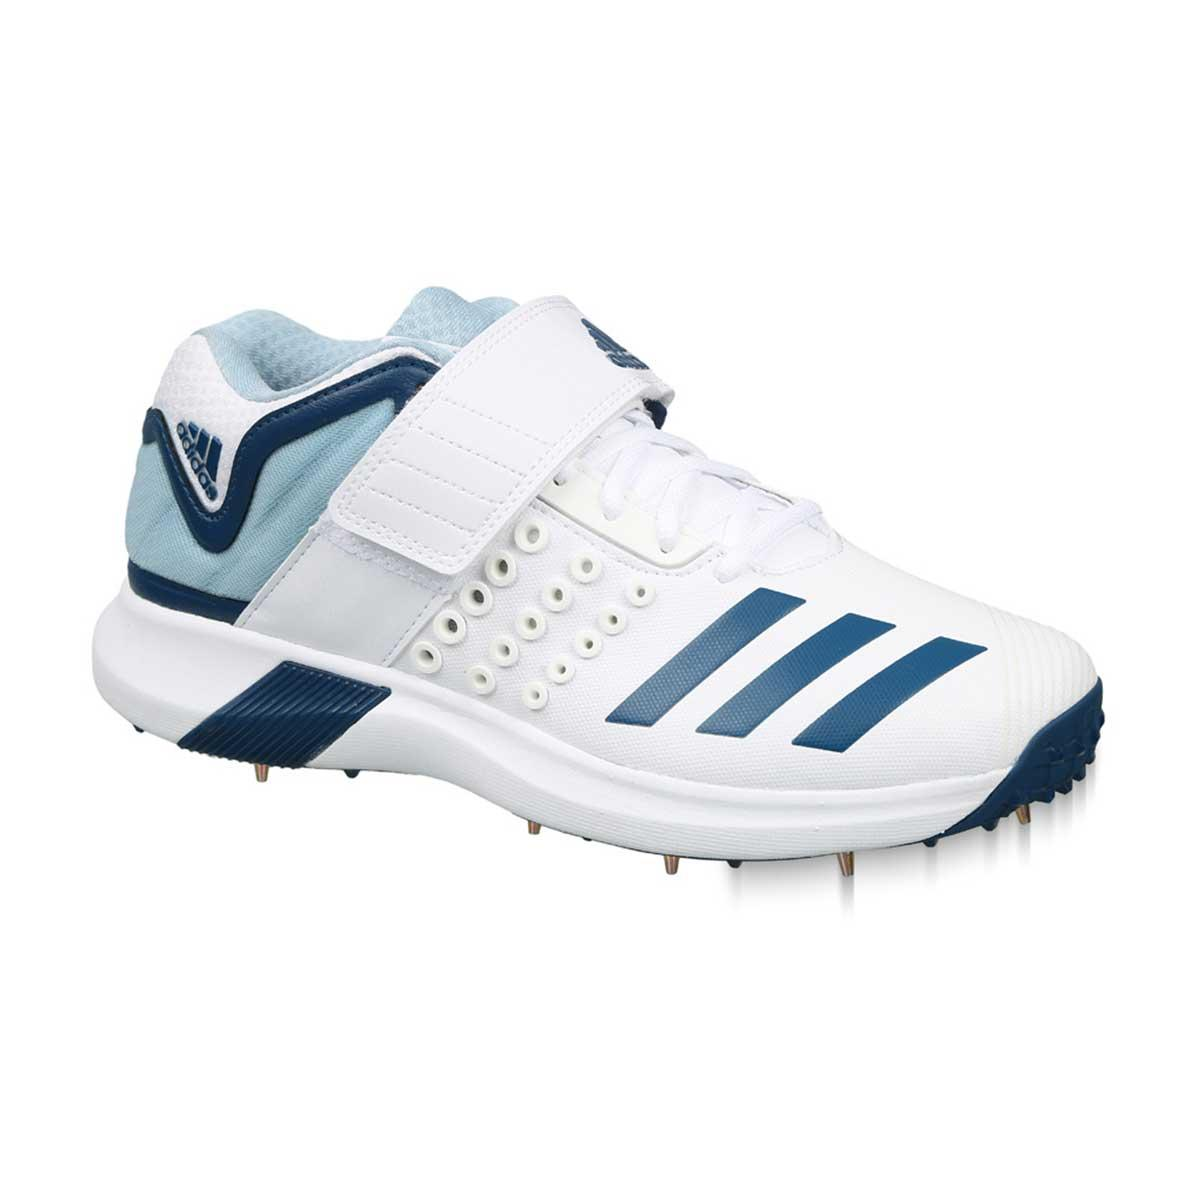 Adidas AdiPower Vector Mid-Cut Cricket Shoes (White/Blue/Grey)